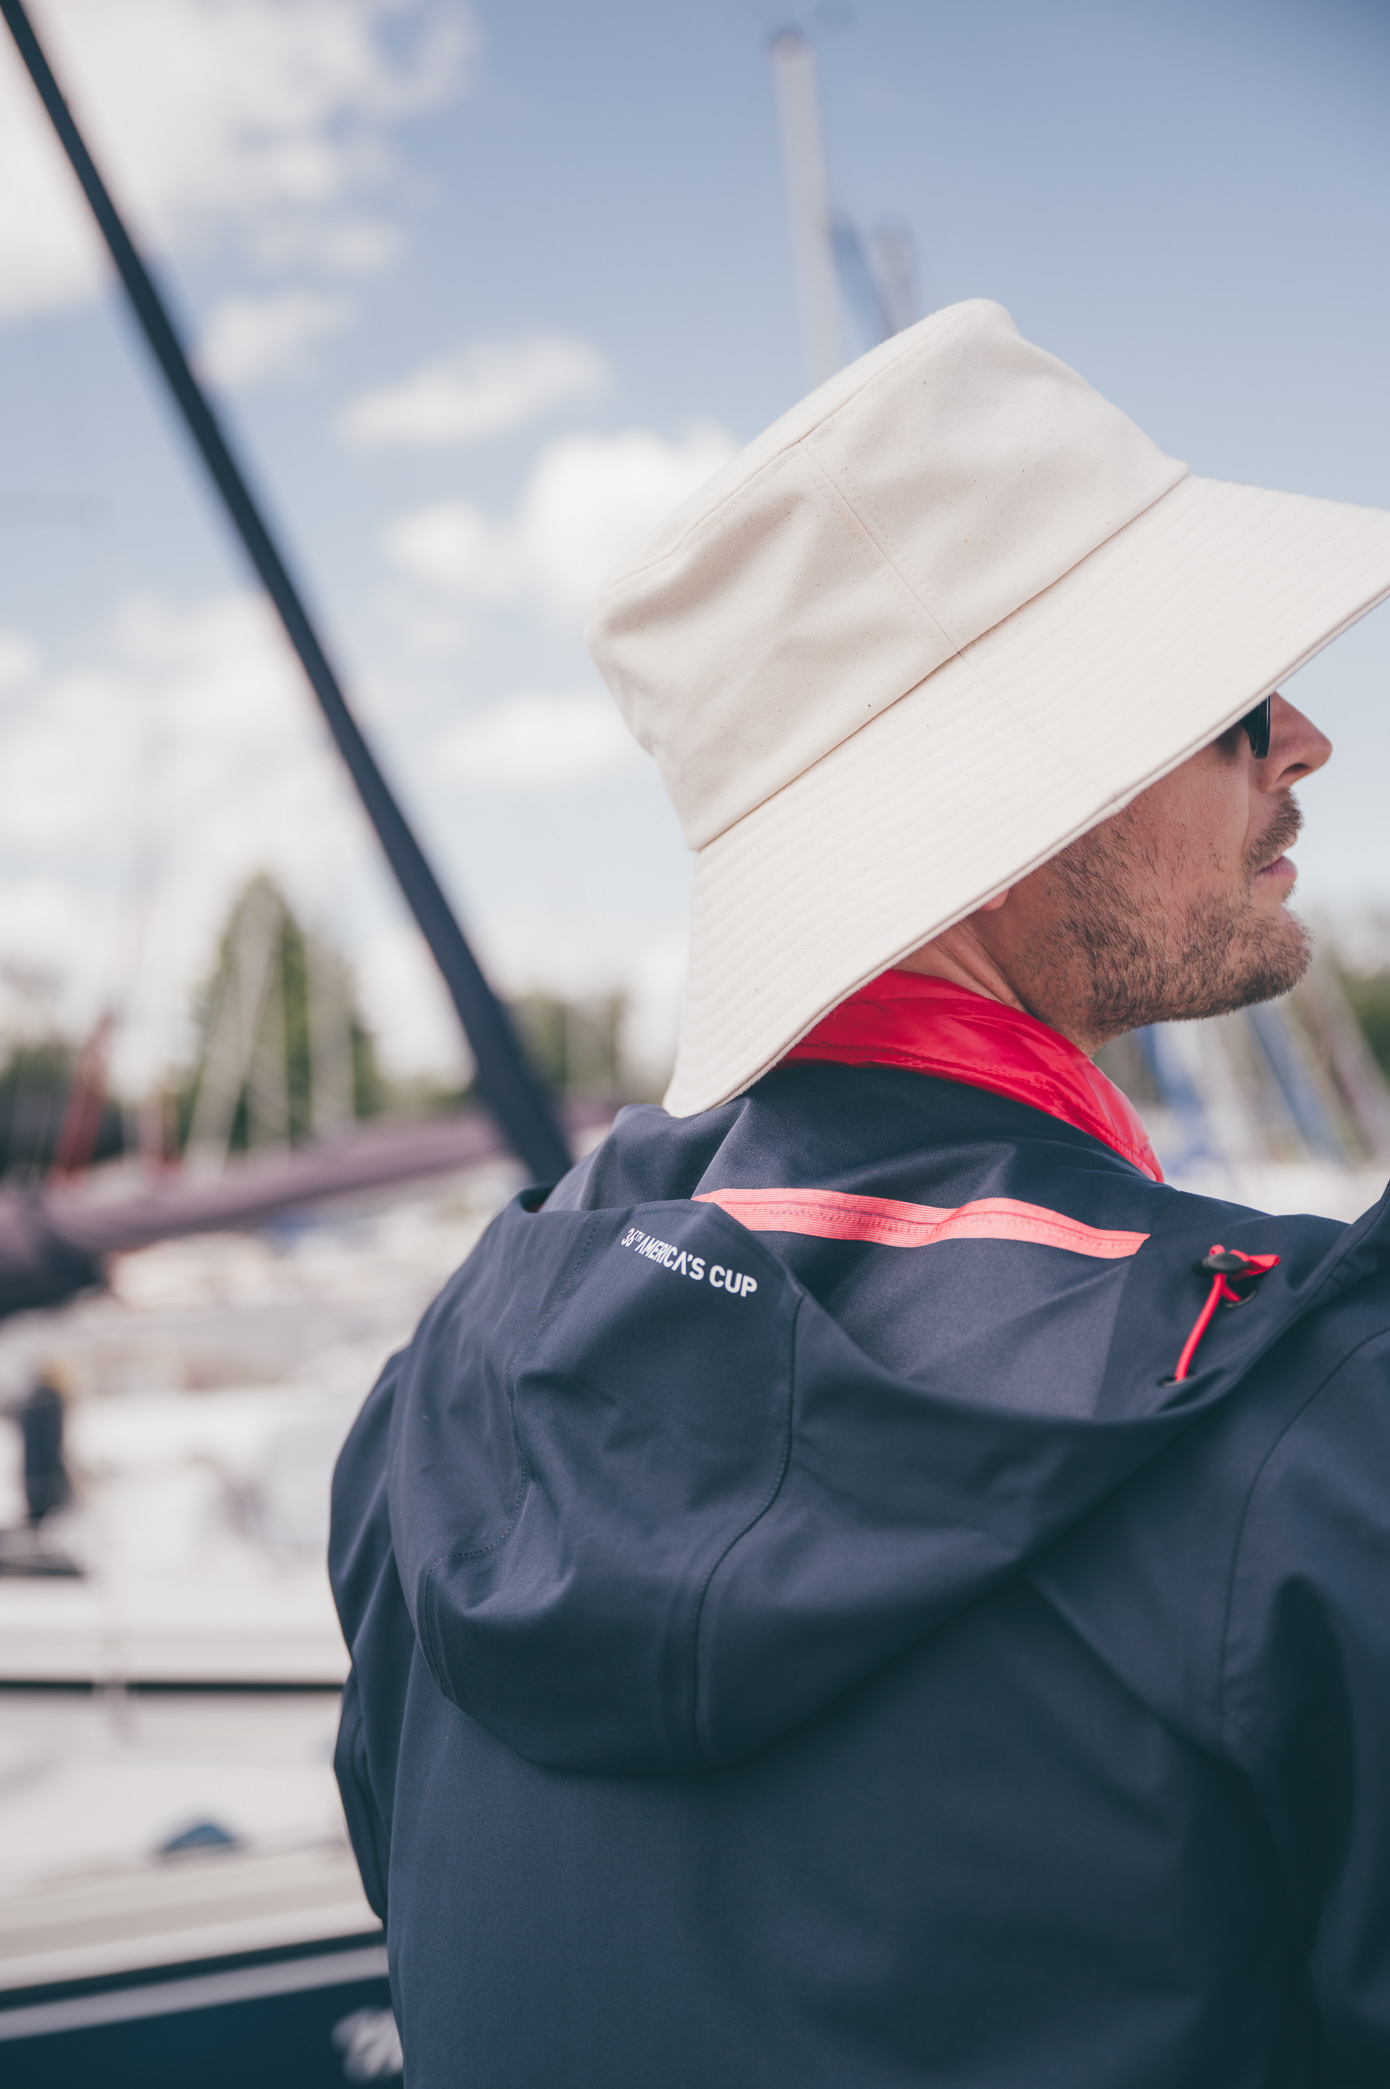 Prada x North Sails, E.tautz, Juun.J, Julien David, Sailing